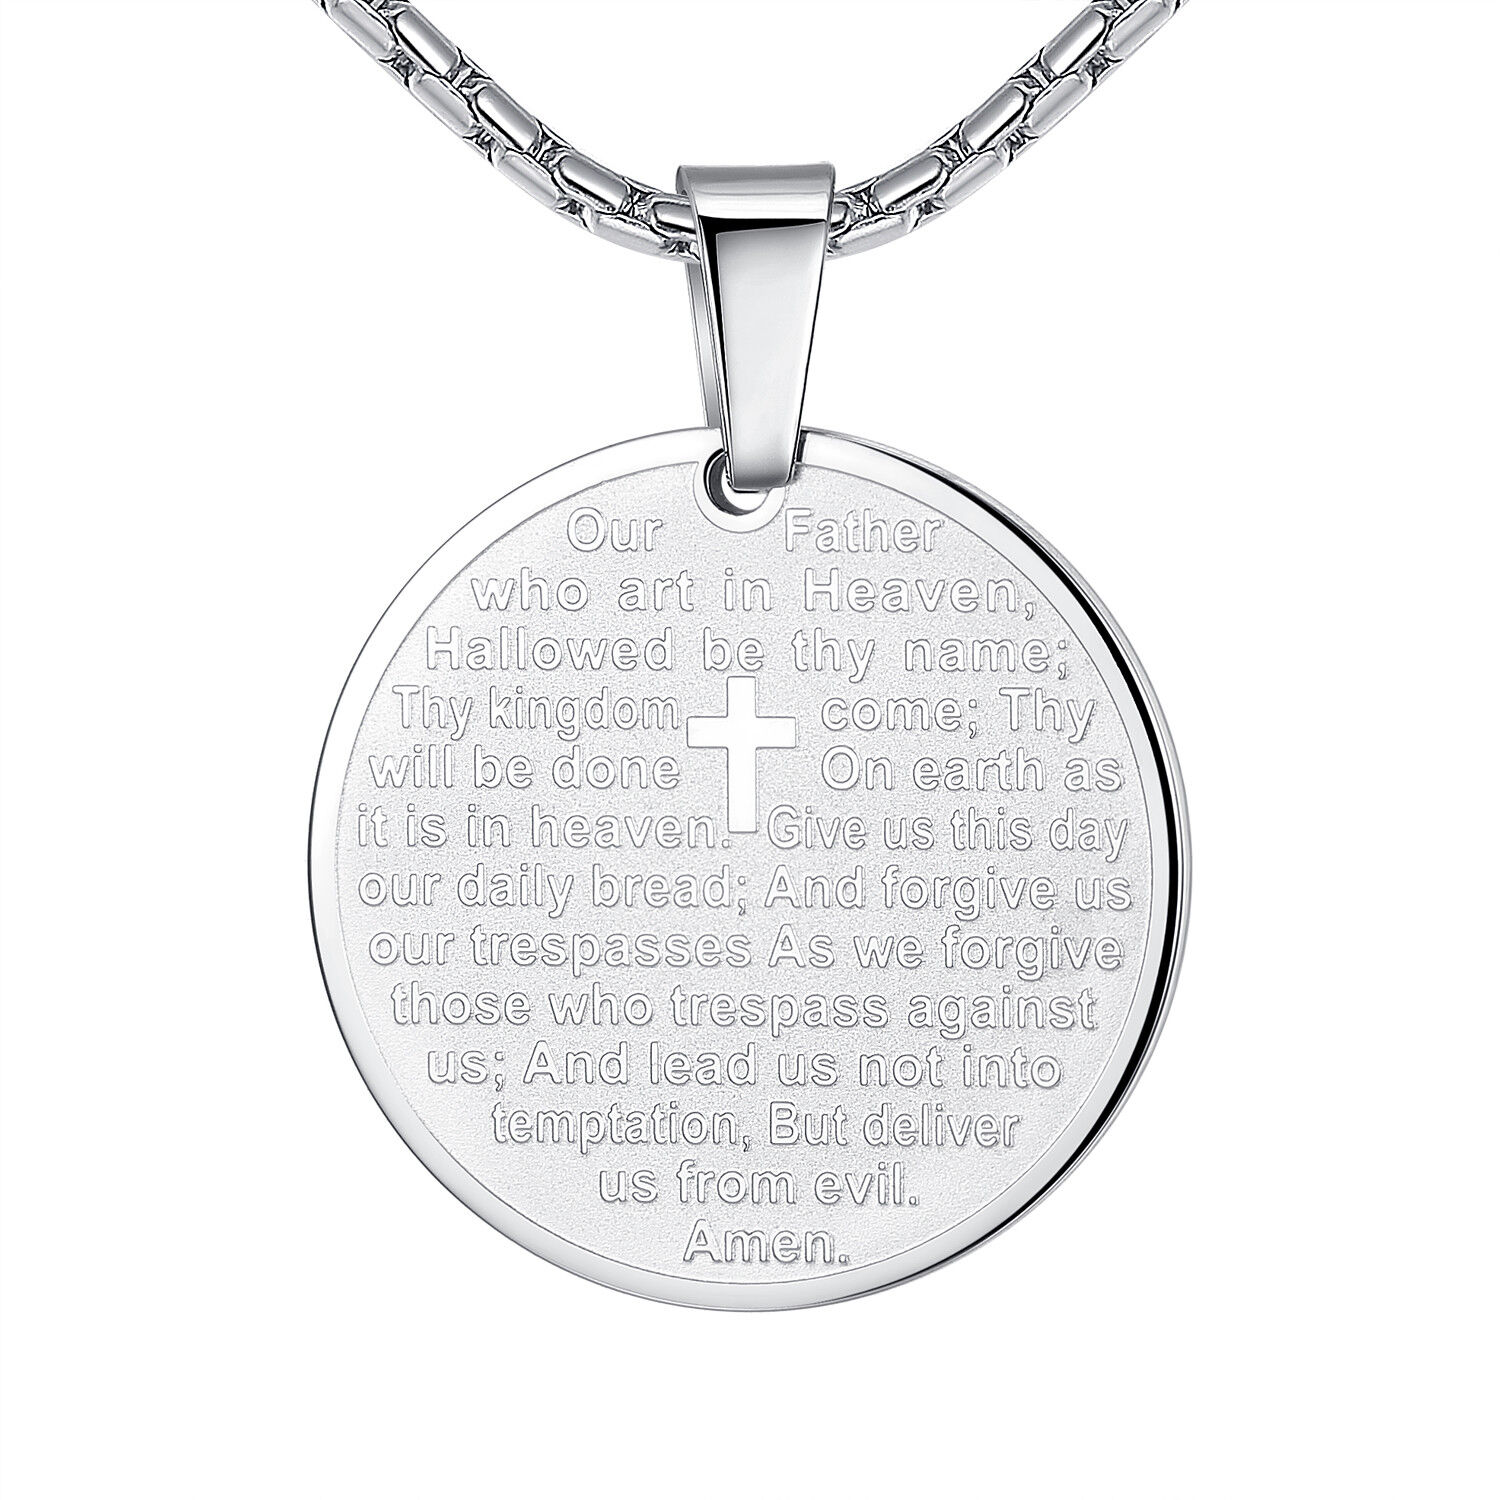 Stainless Steel Unisex Bible Lord's Prayer and Cross Medallion Pendant Necklace Chains, Necklaces & Pendants